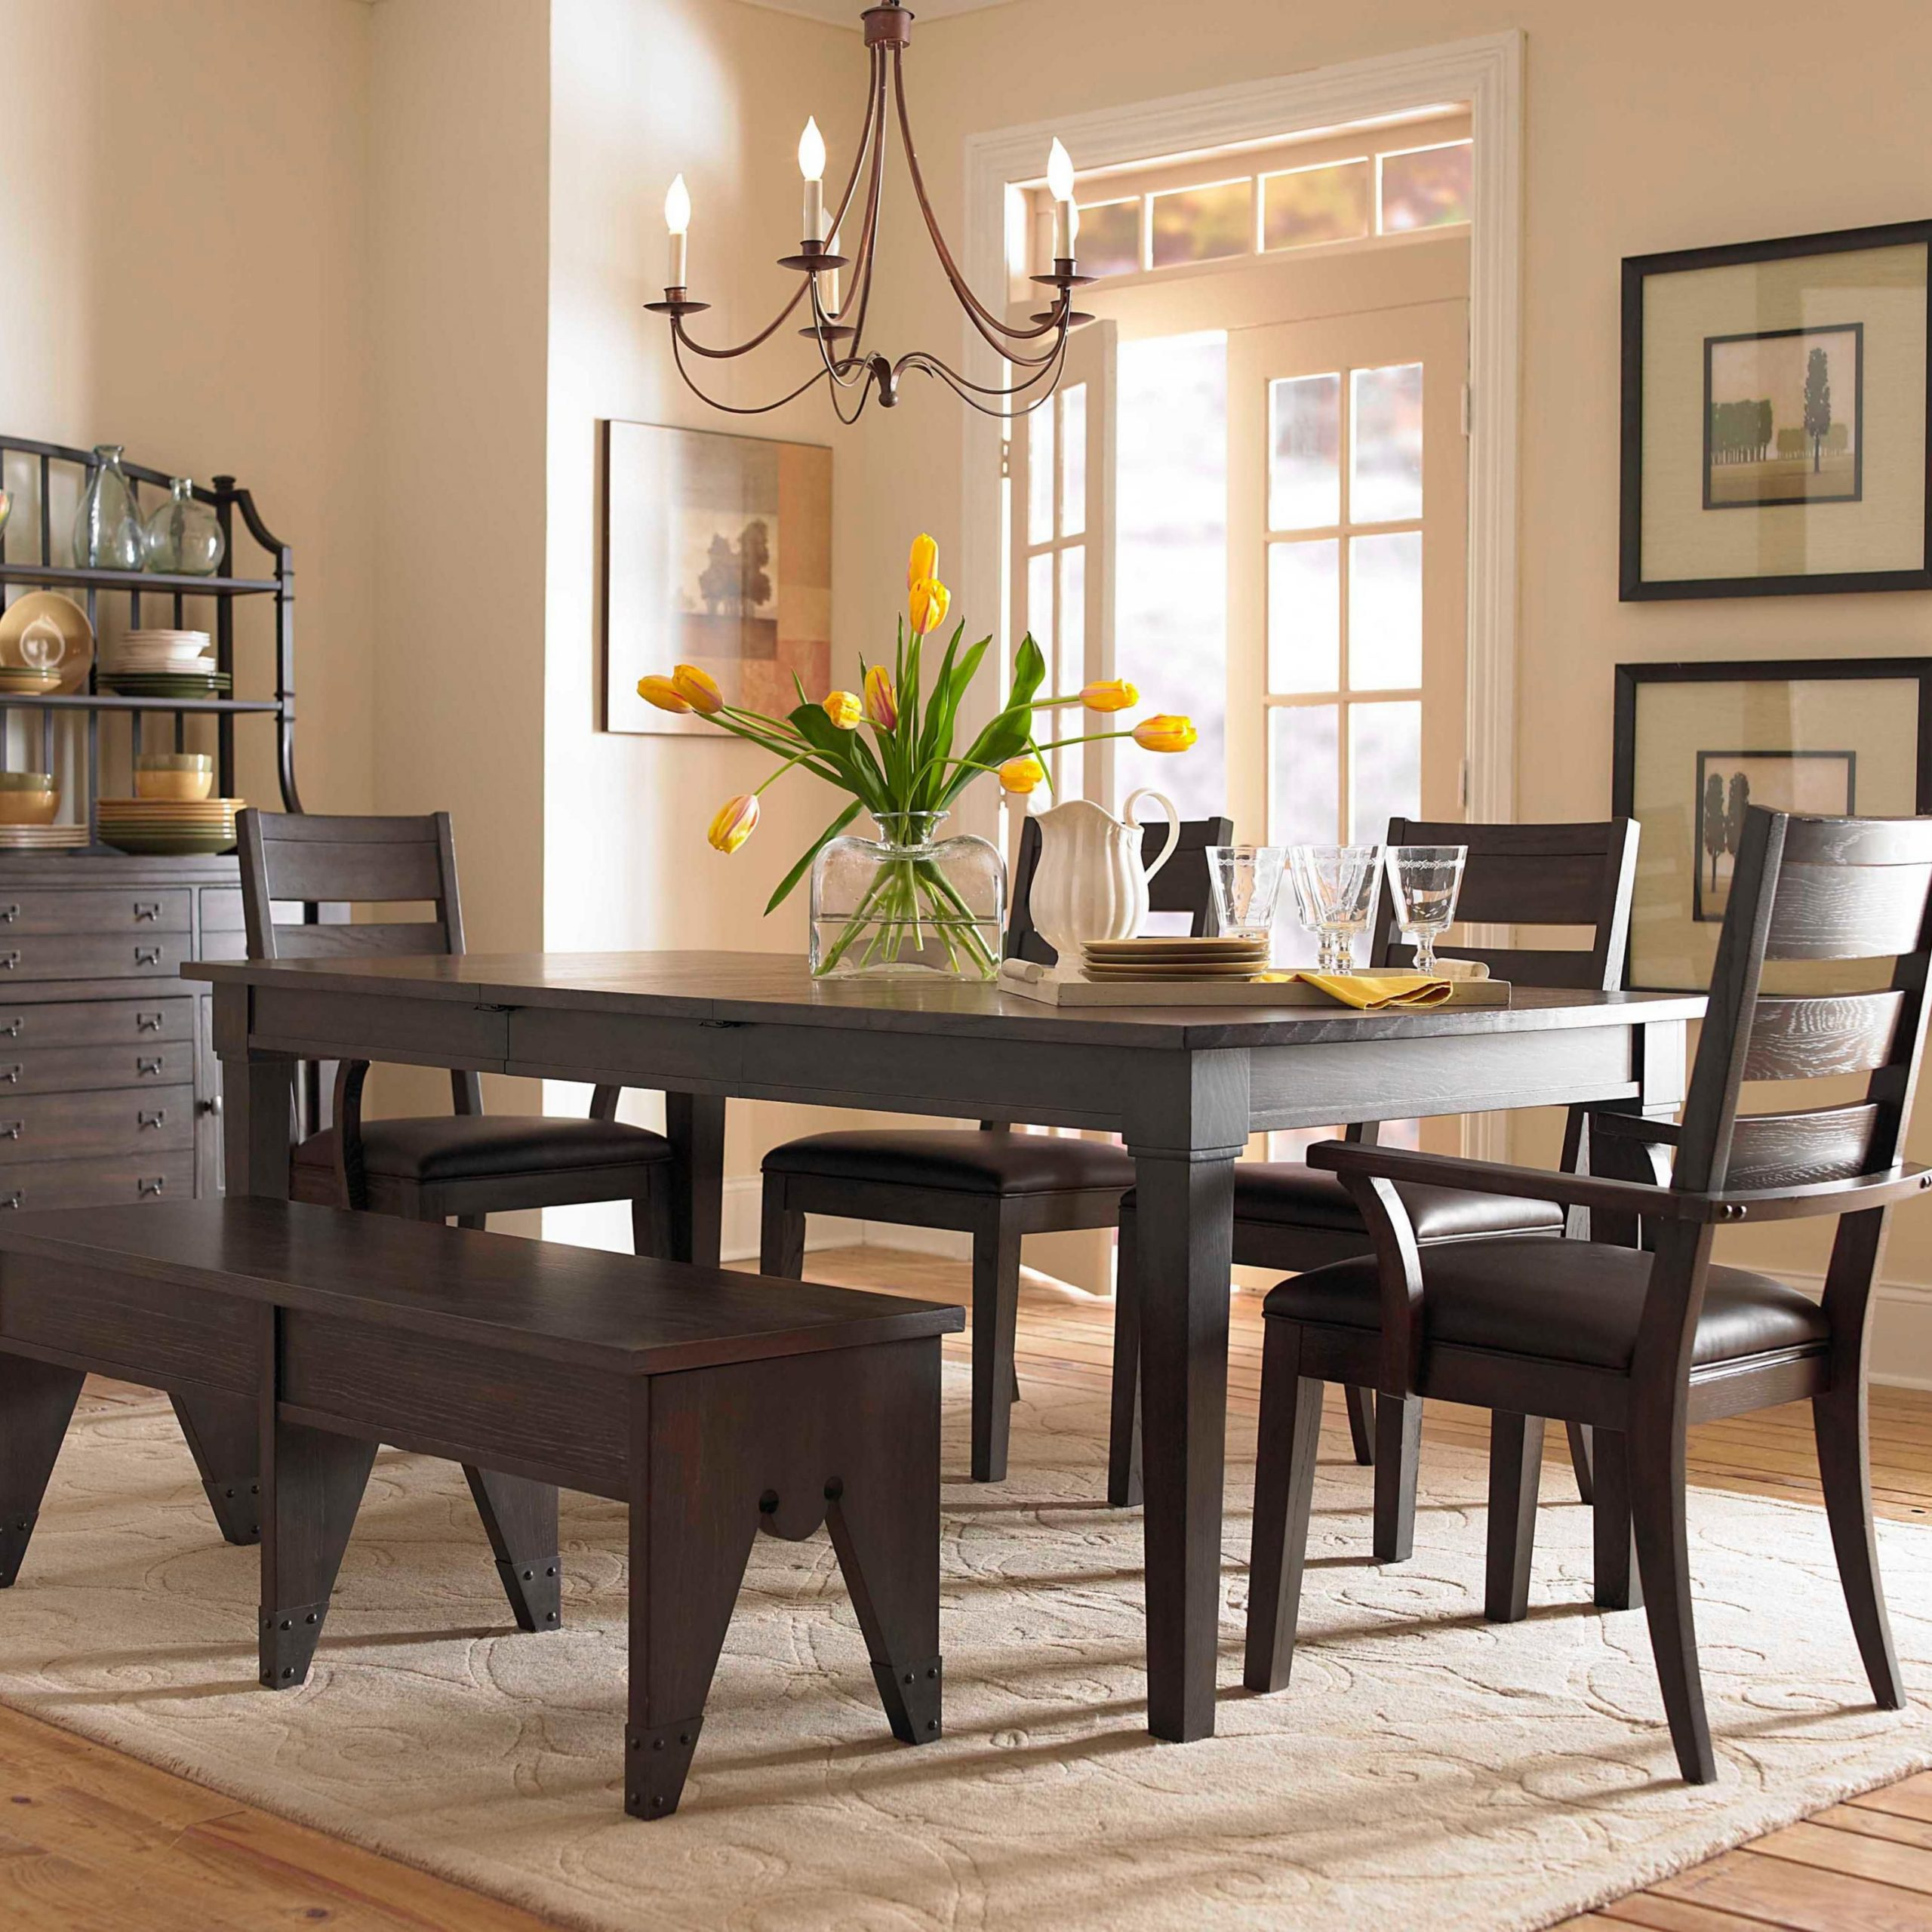 Fashionable Transitional 6 Seating Casual Dining Tables For Broyhill Furniture: Attic Retreat 6 Piece Dining Table (View 3 of 30)